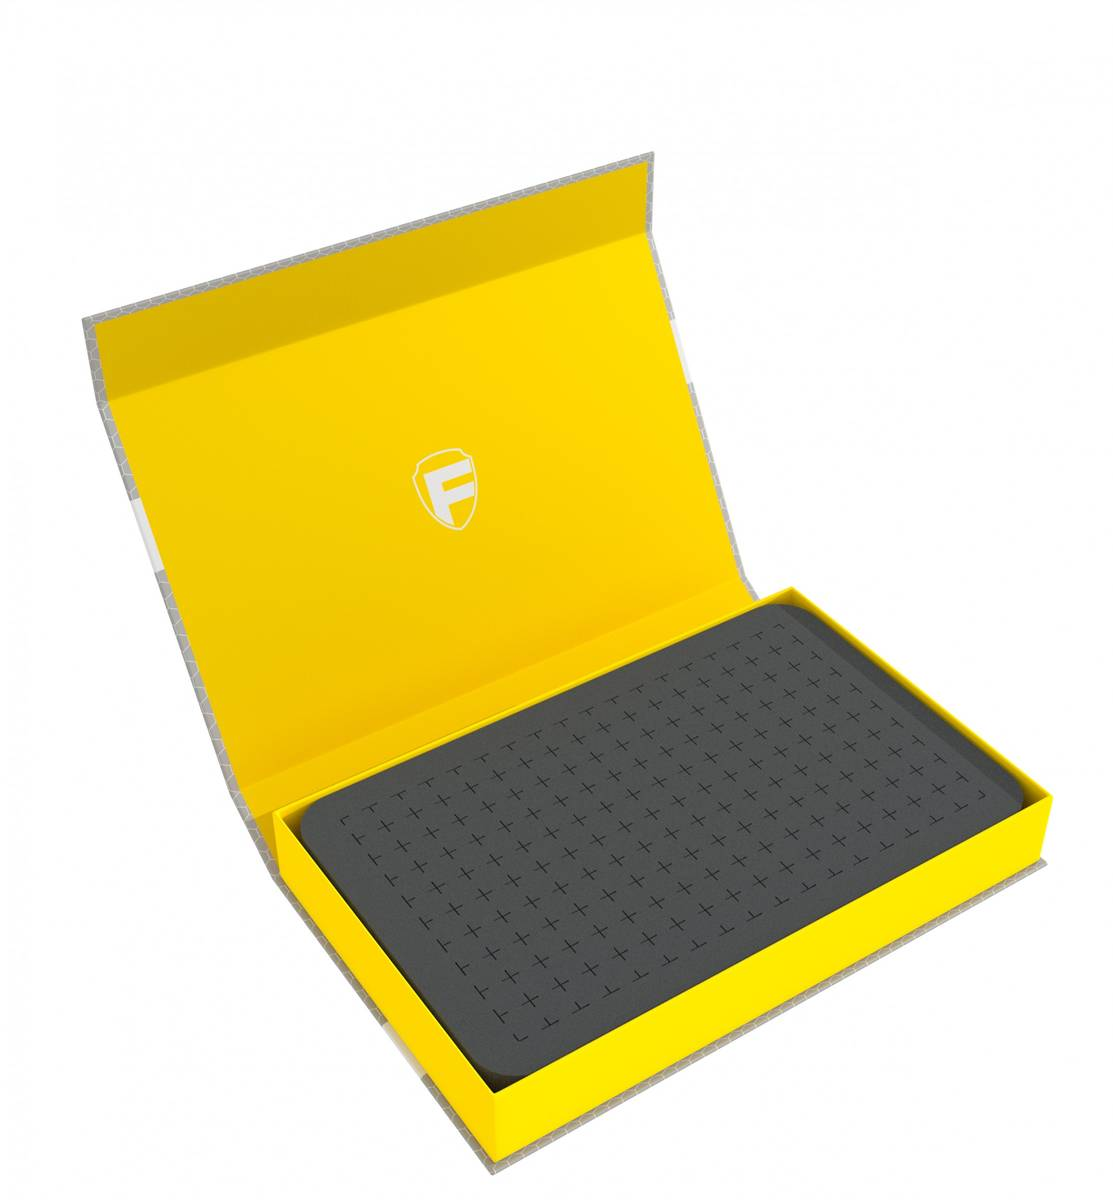 Feldherr Magnetic Box yellow with 25 mm pick and pluck foam for custom projects